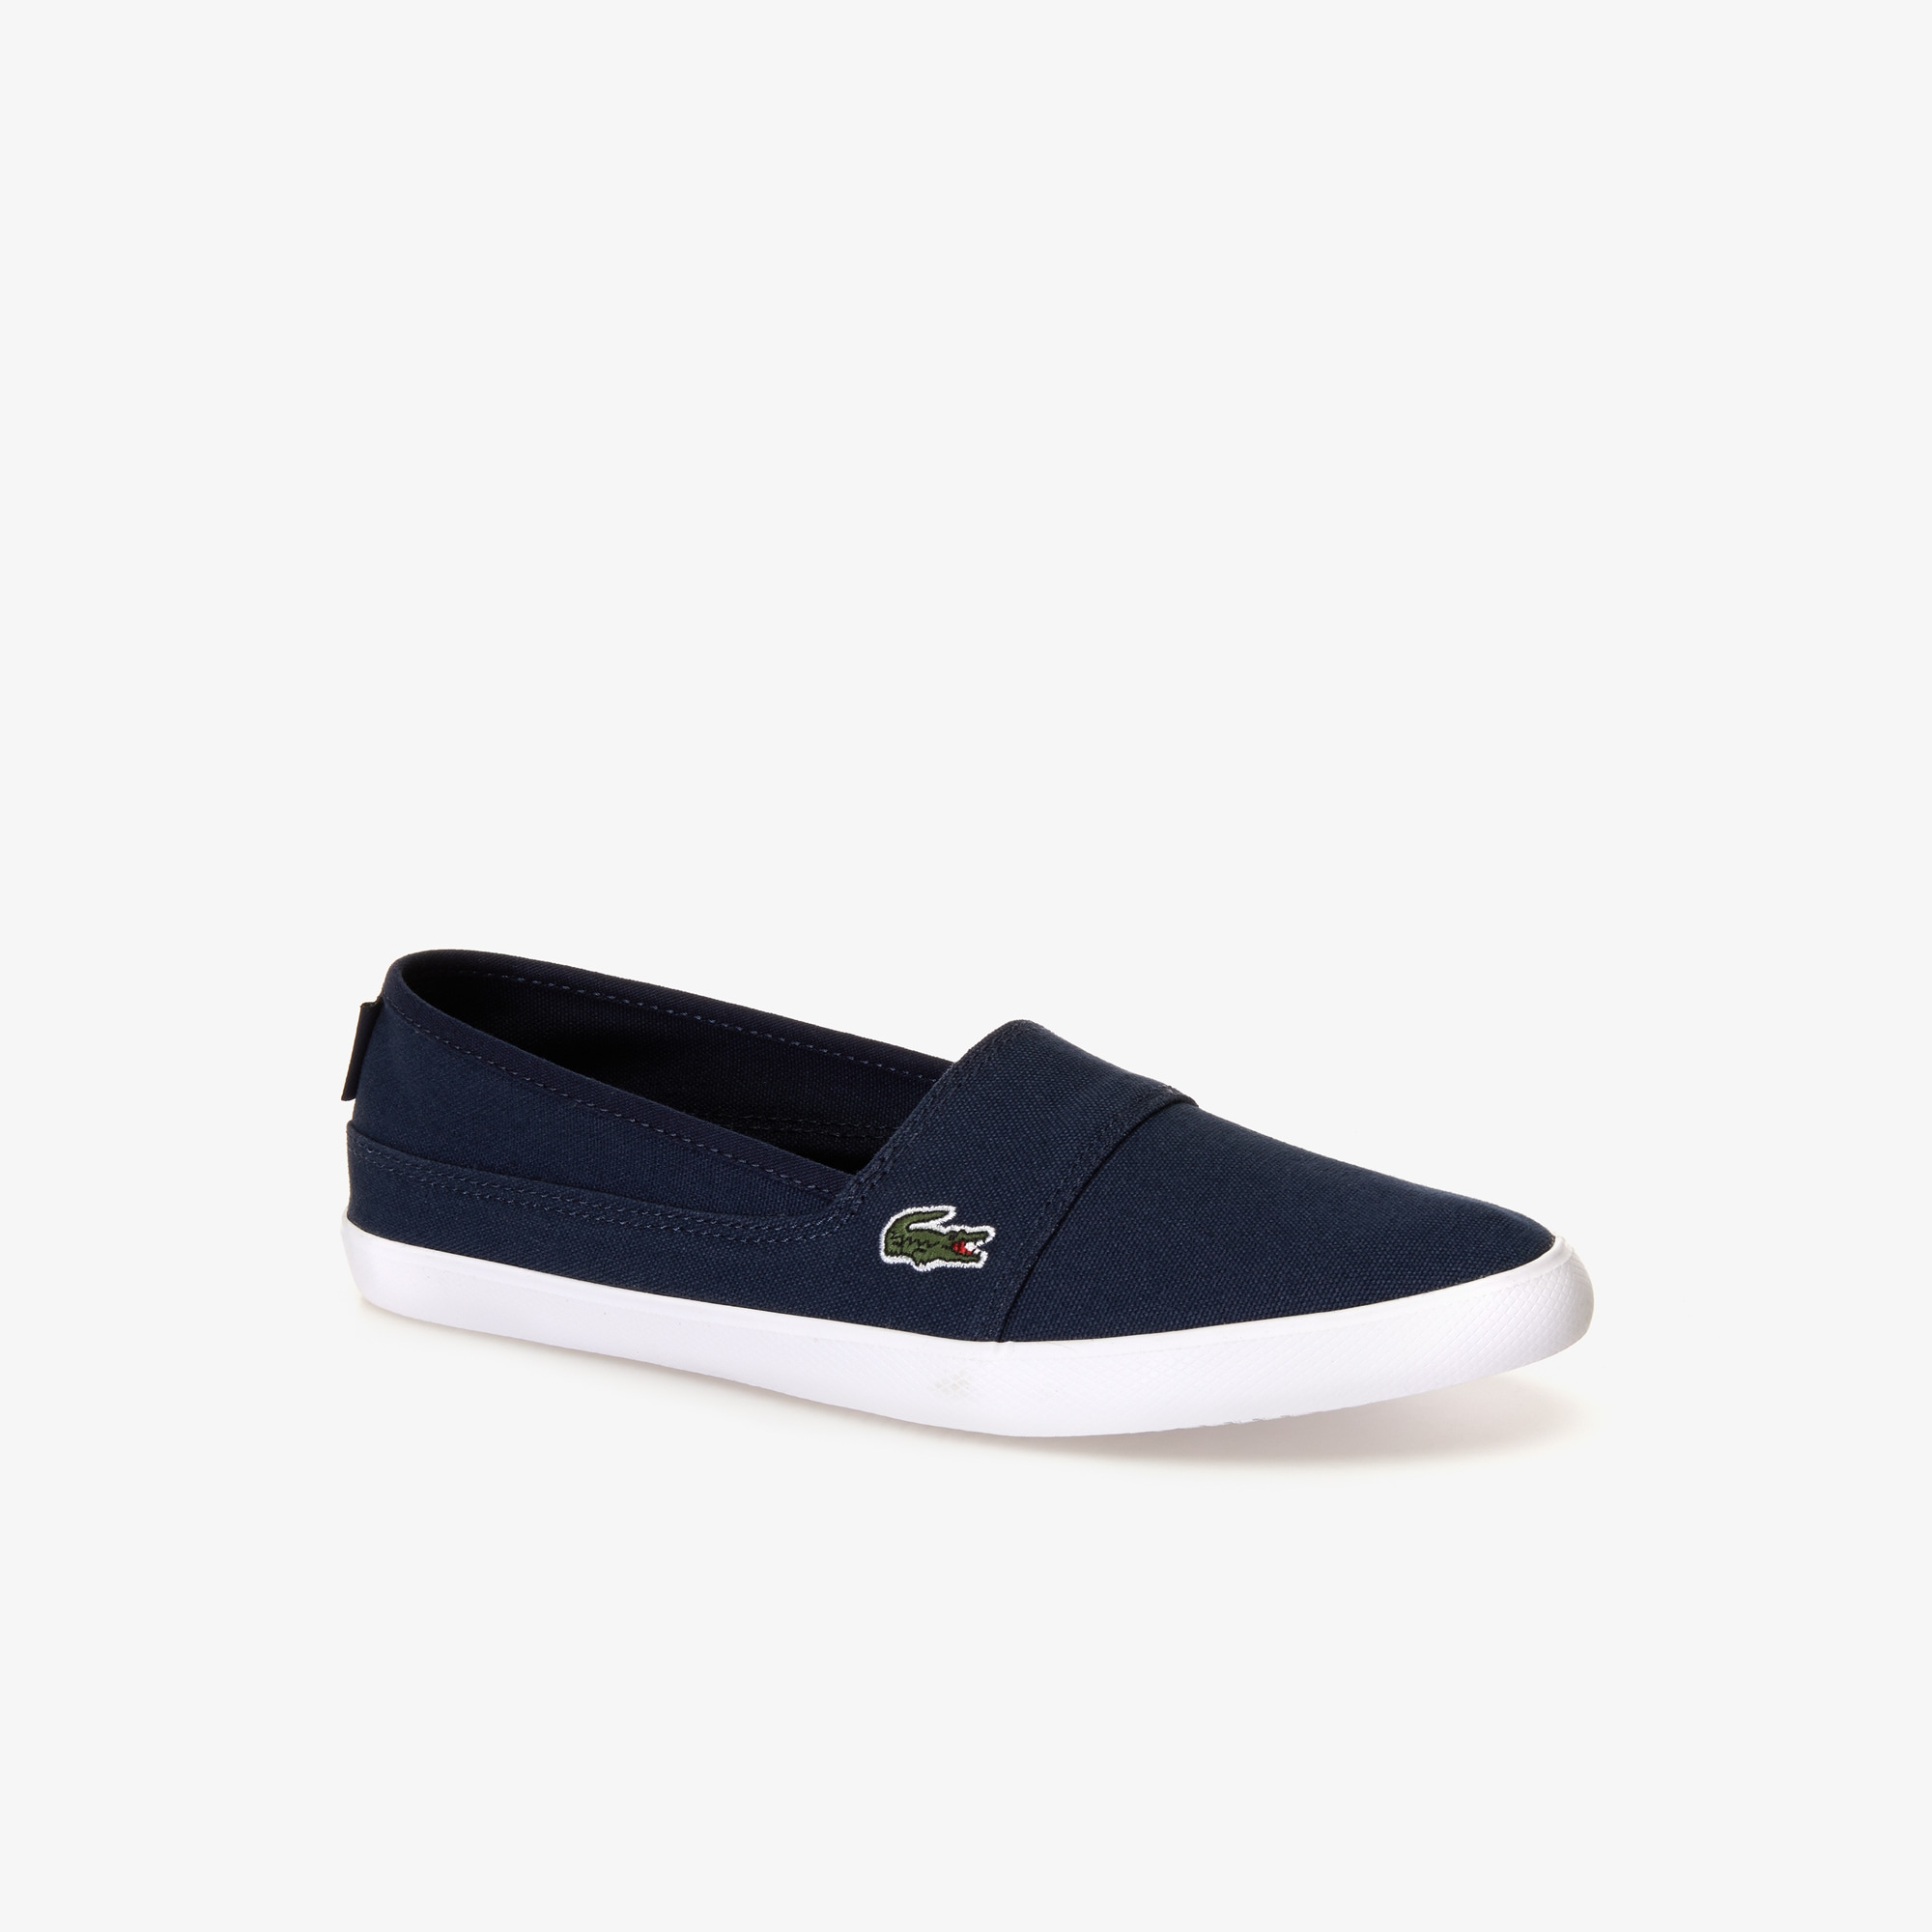 Chaussures FemmeCollection Lacoste Chaussures Chaussures Chaussures Lacoste FemmeCollection Lacoste FemmeCollection FemmeCollection D29YEHWI